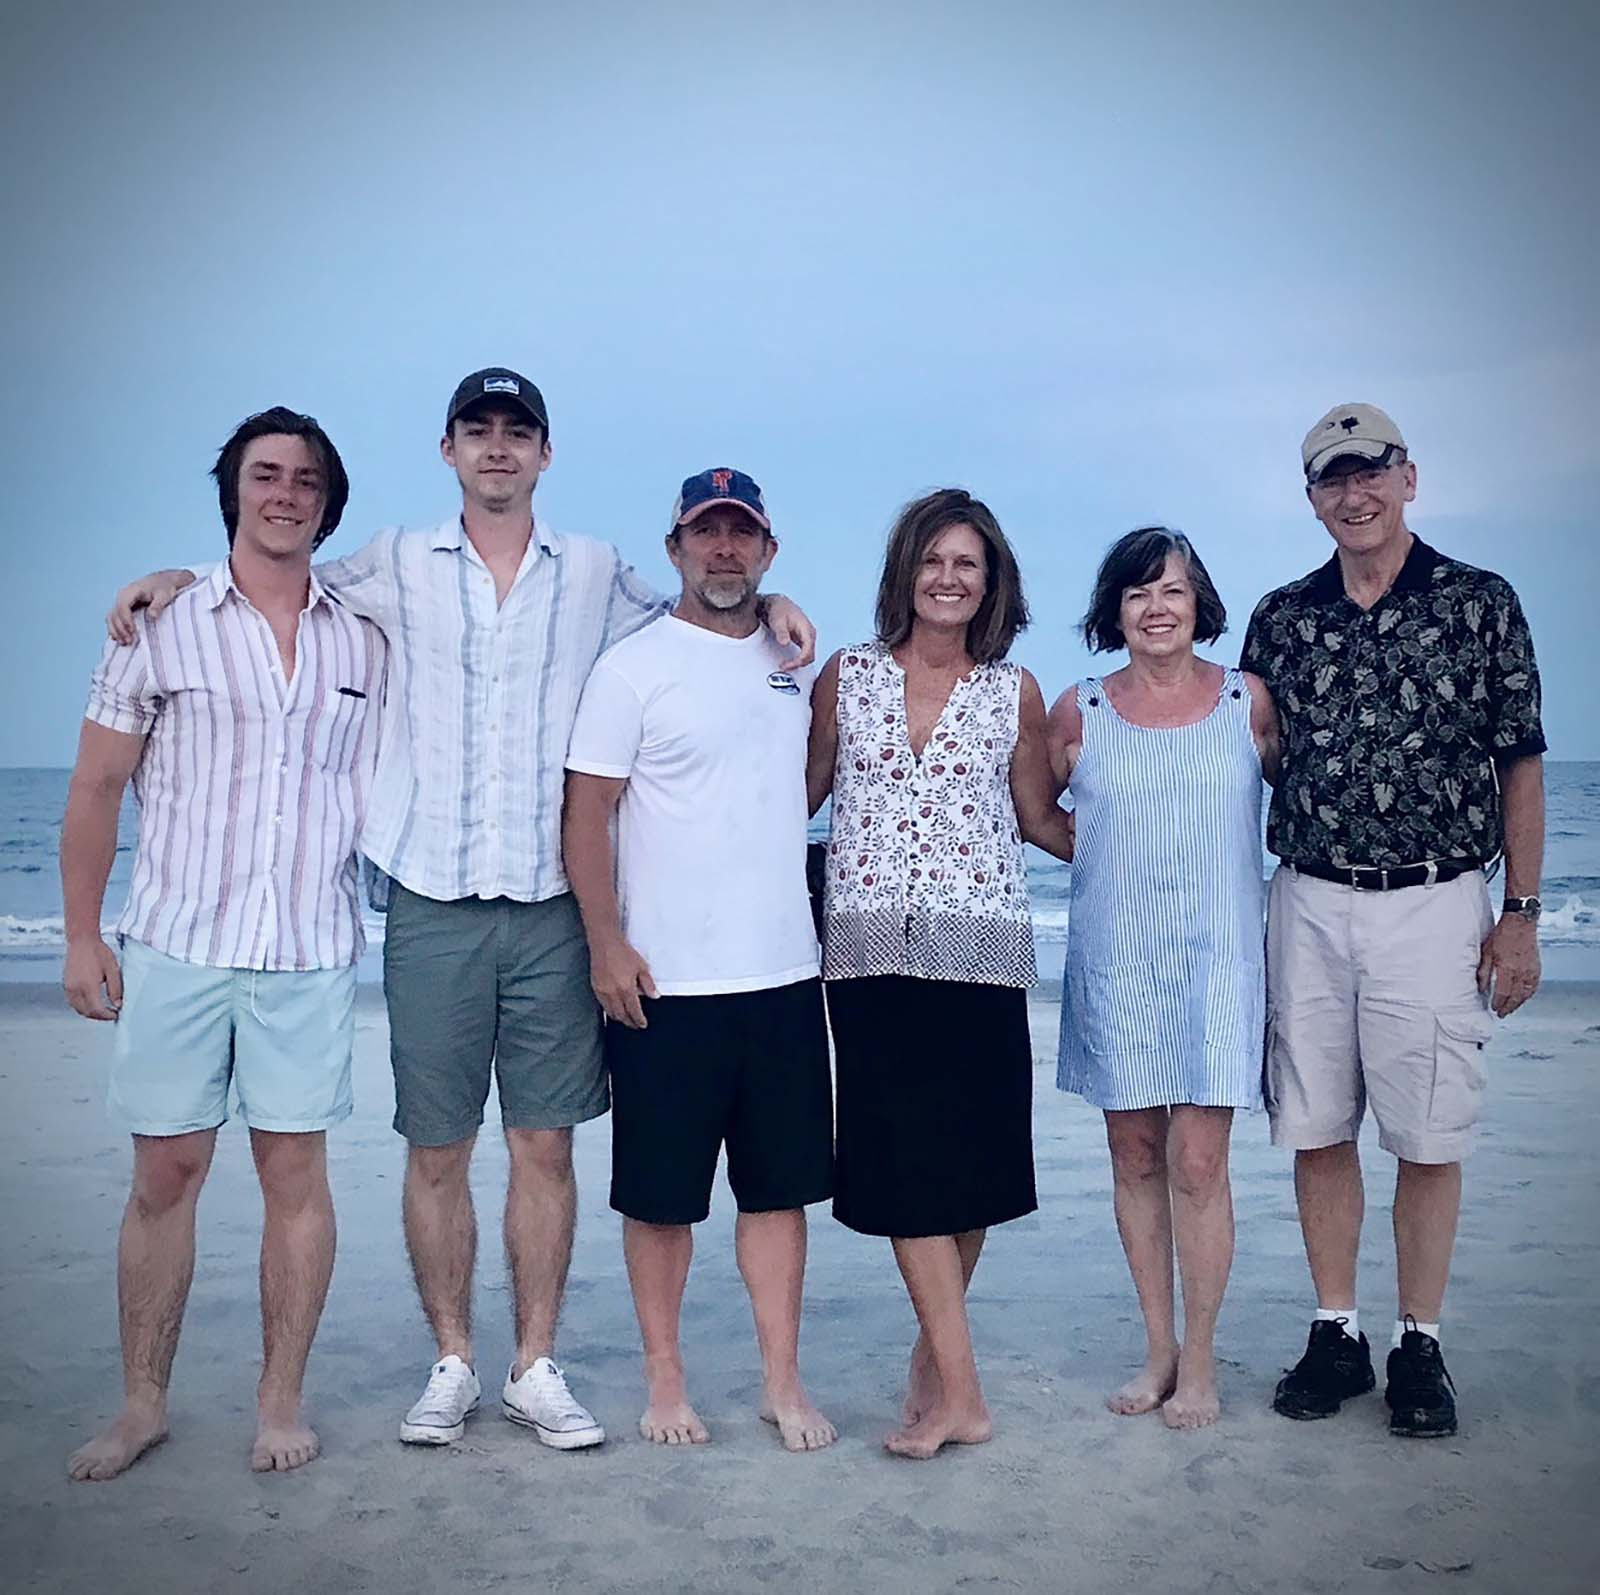 Family on the beach together wearing light clothing